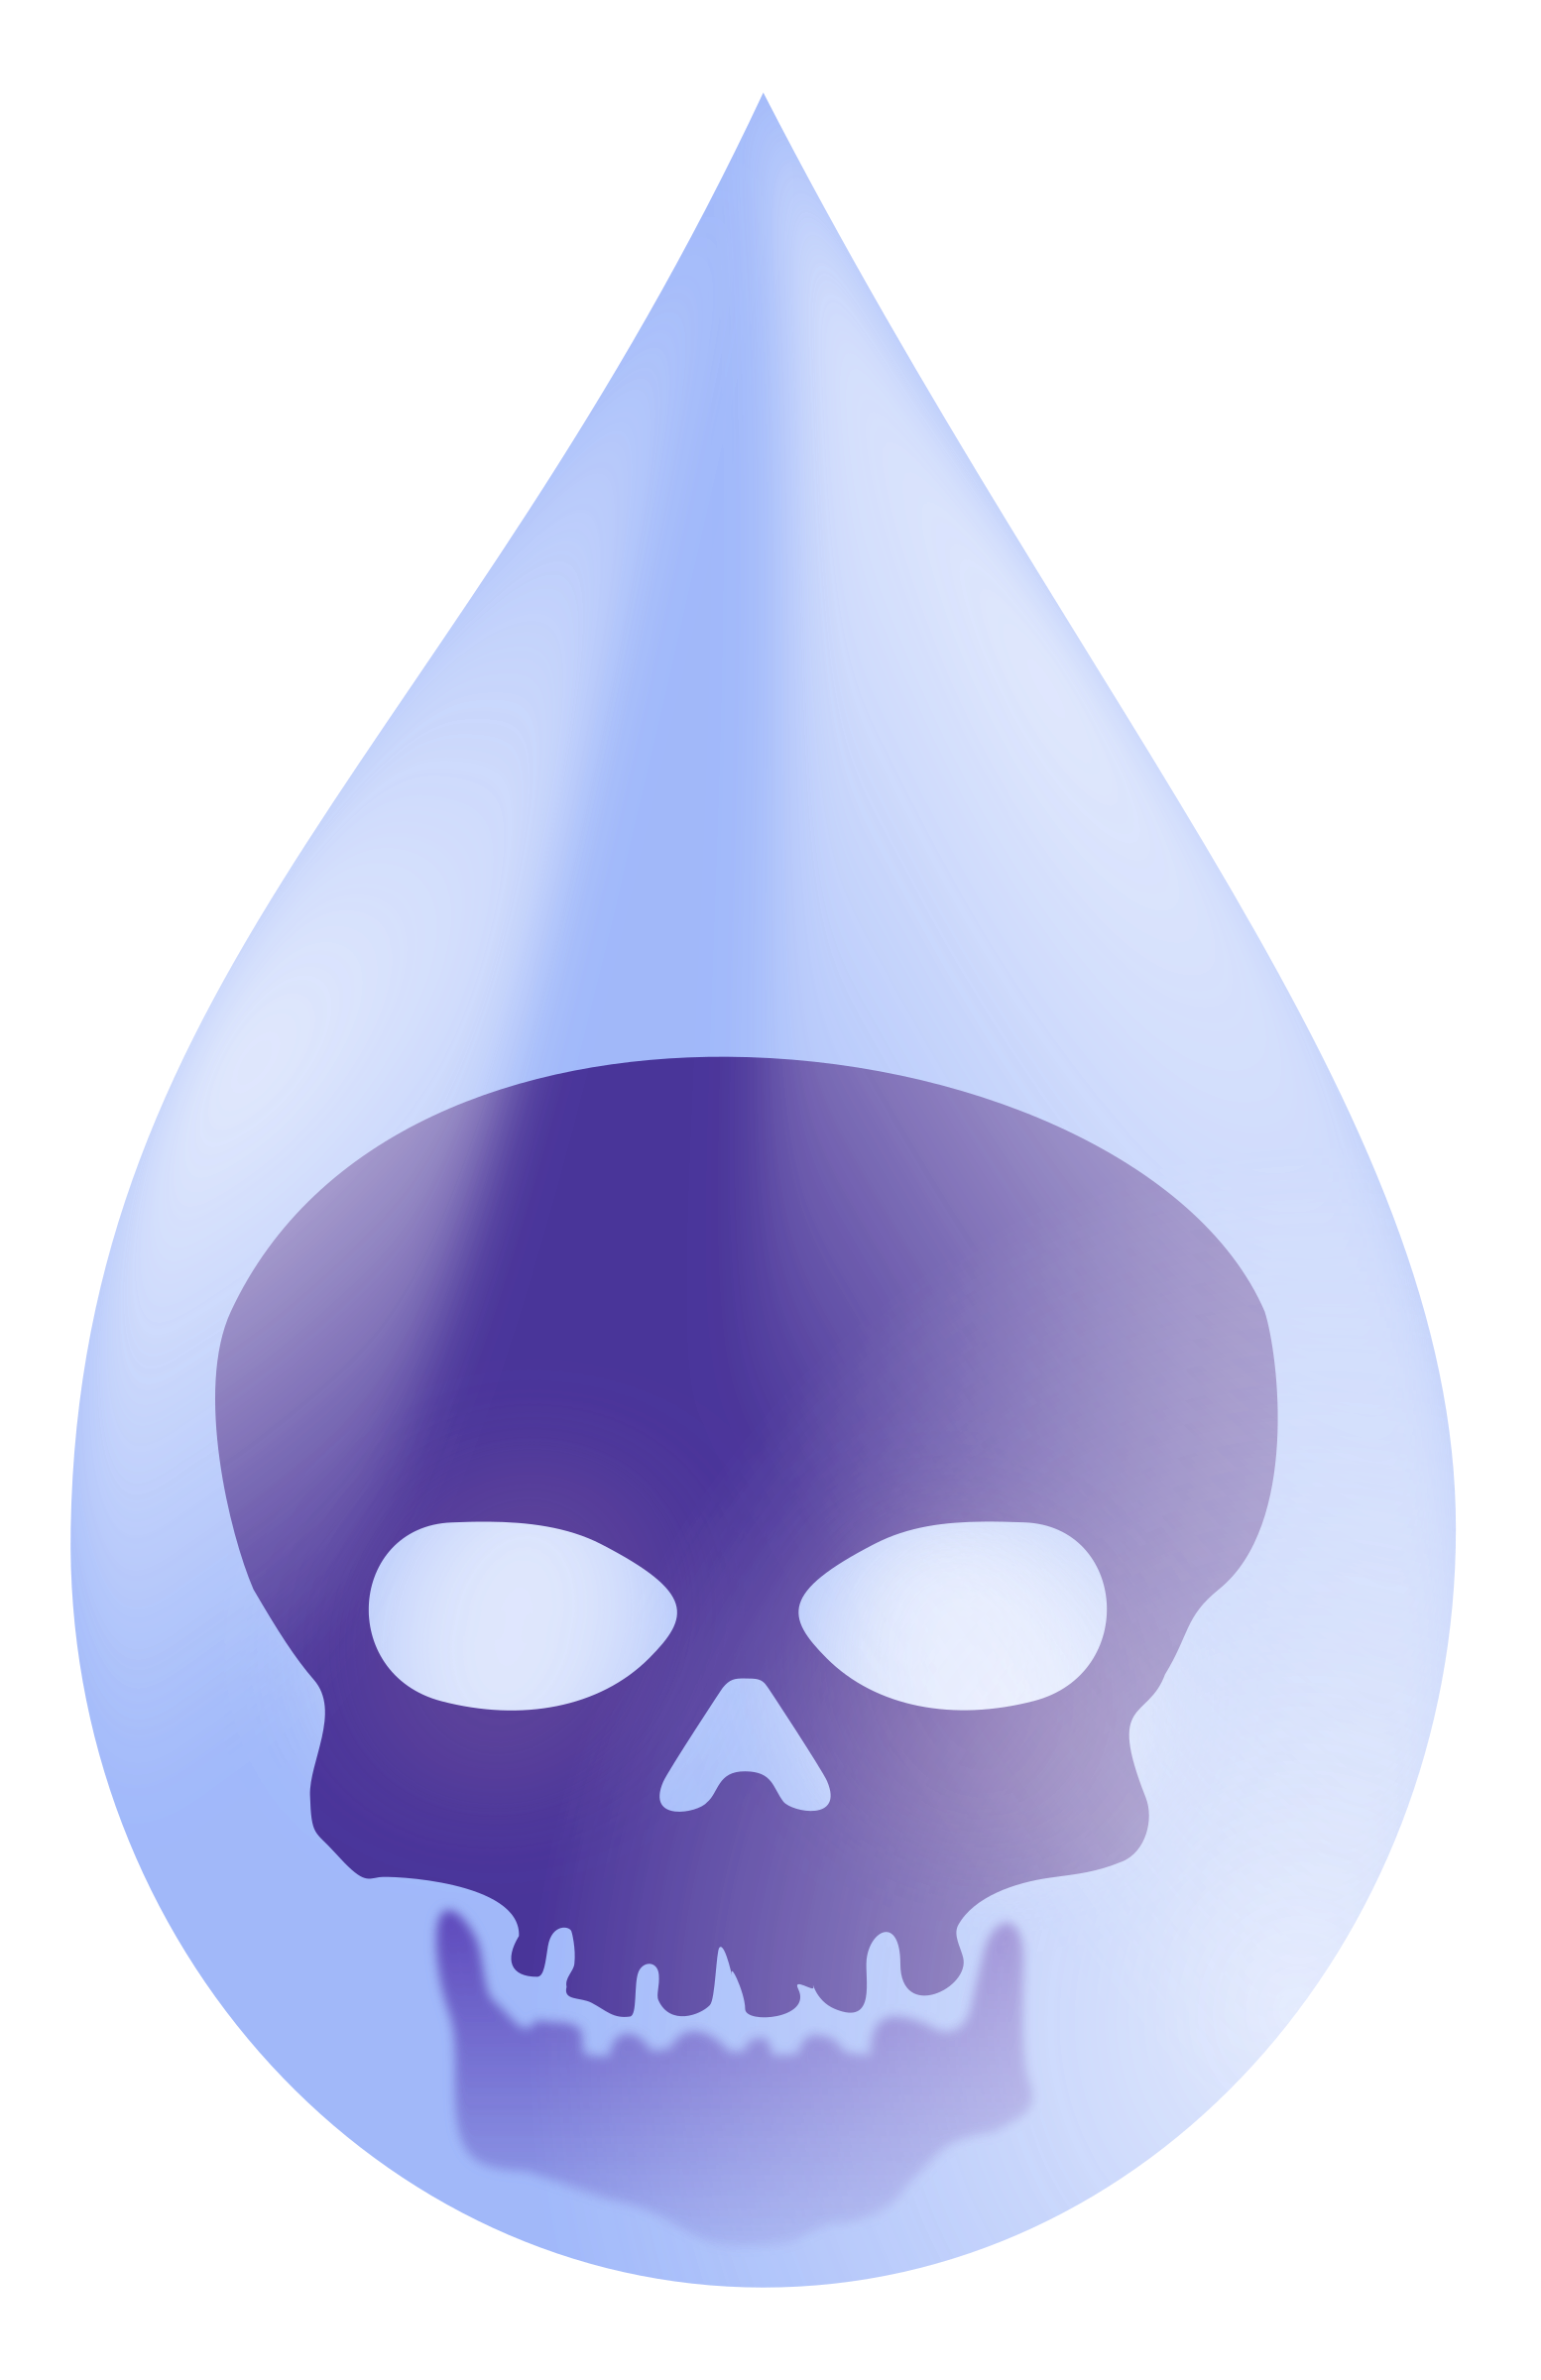 Words clipart water. Toxic clipartfest biohazard zombie